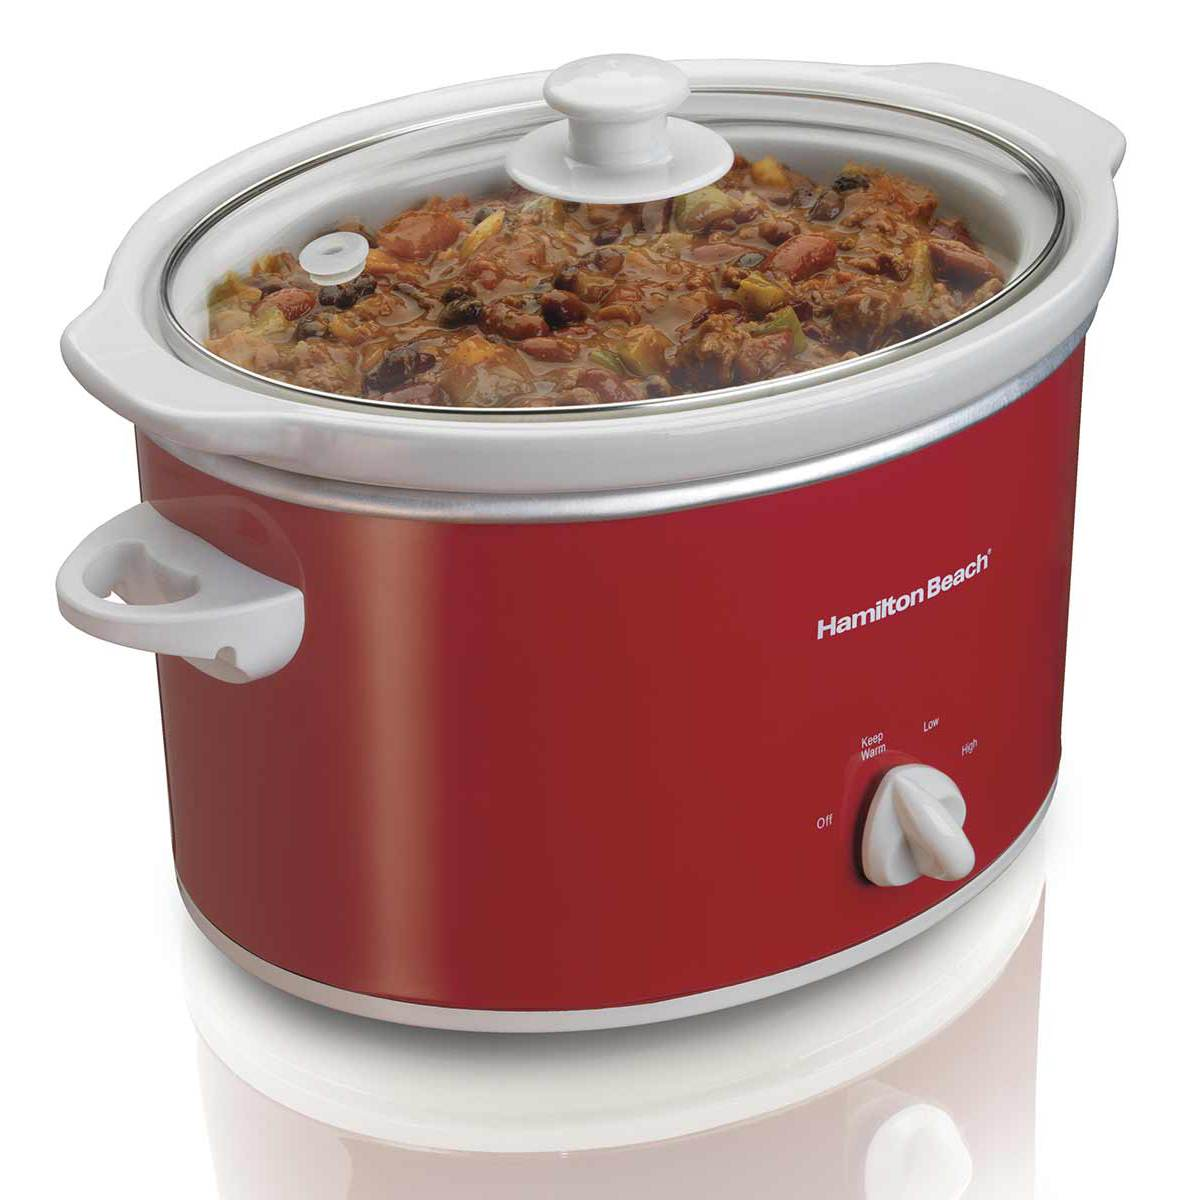 3 Quart Slow Cooker (33136T)